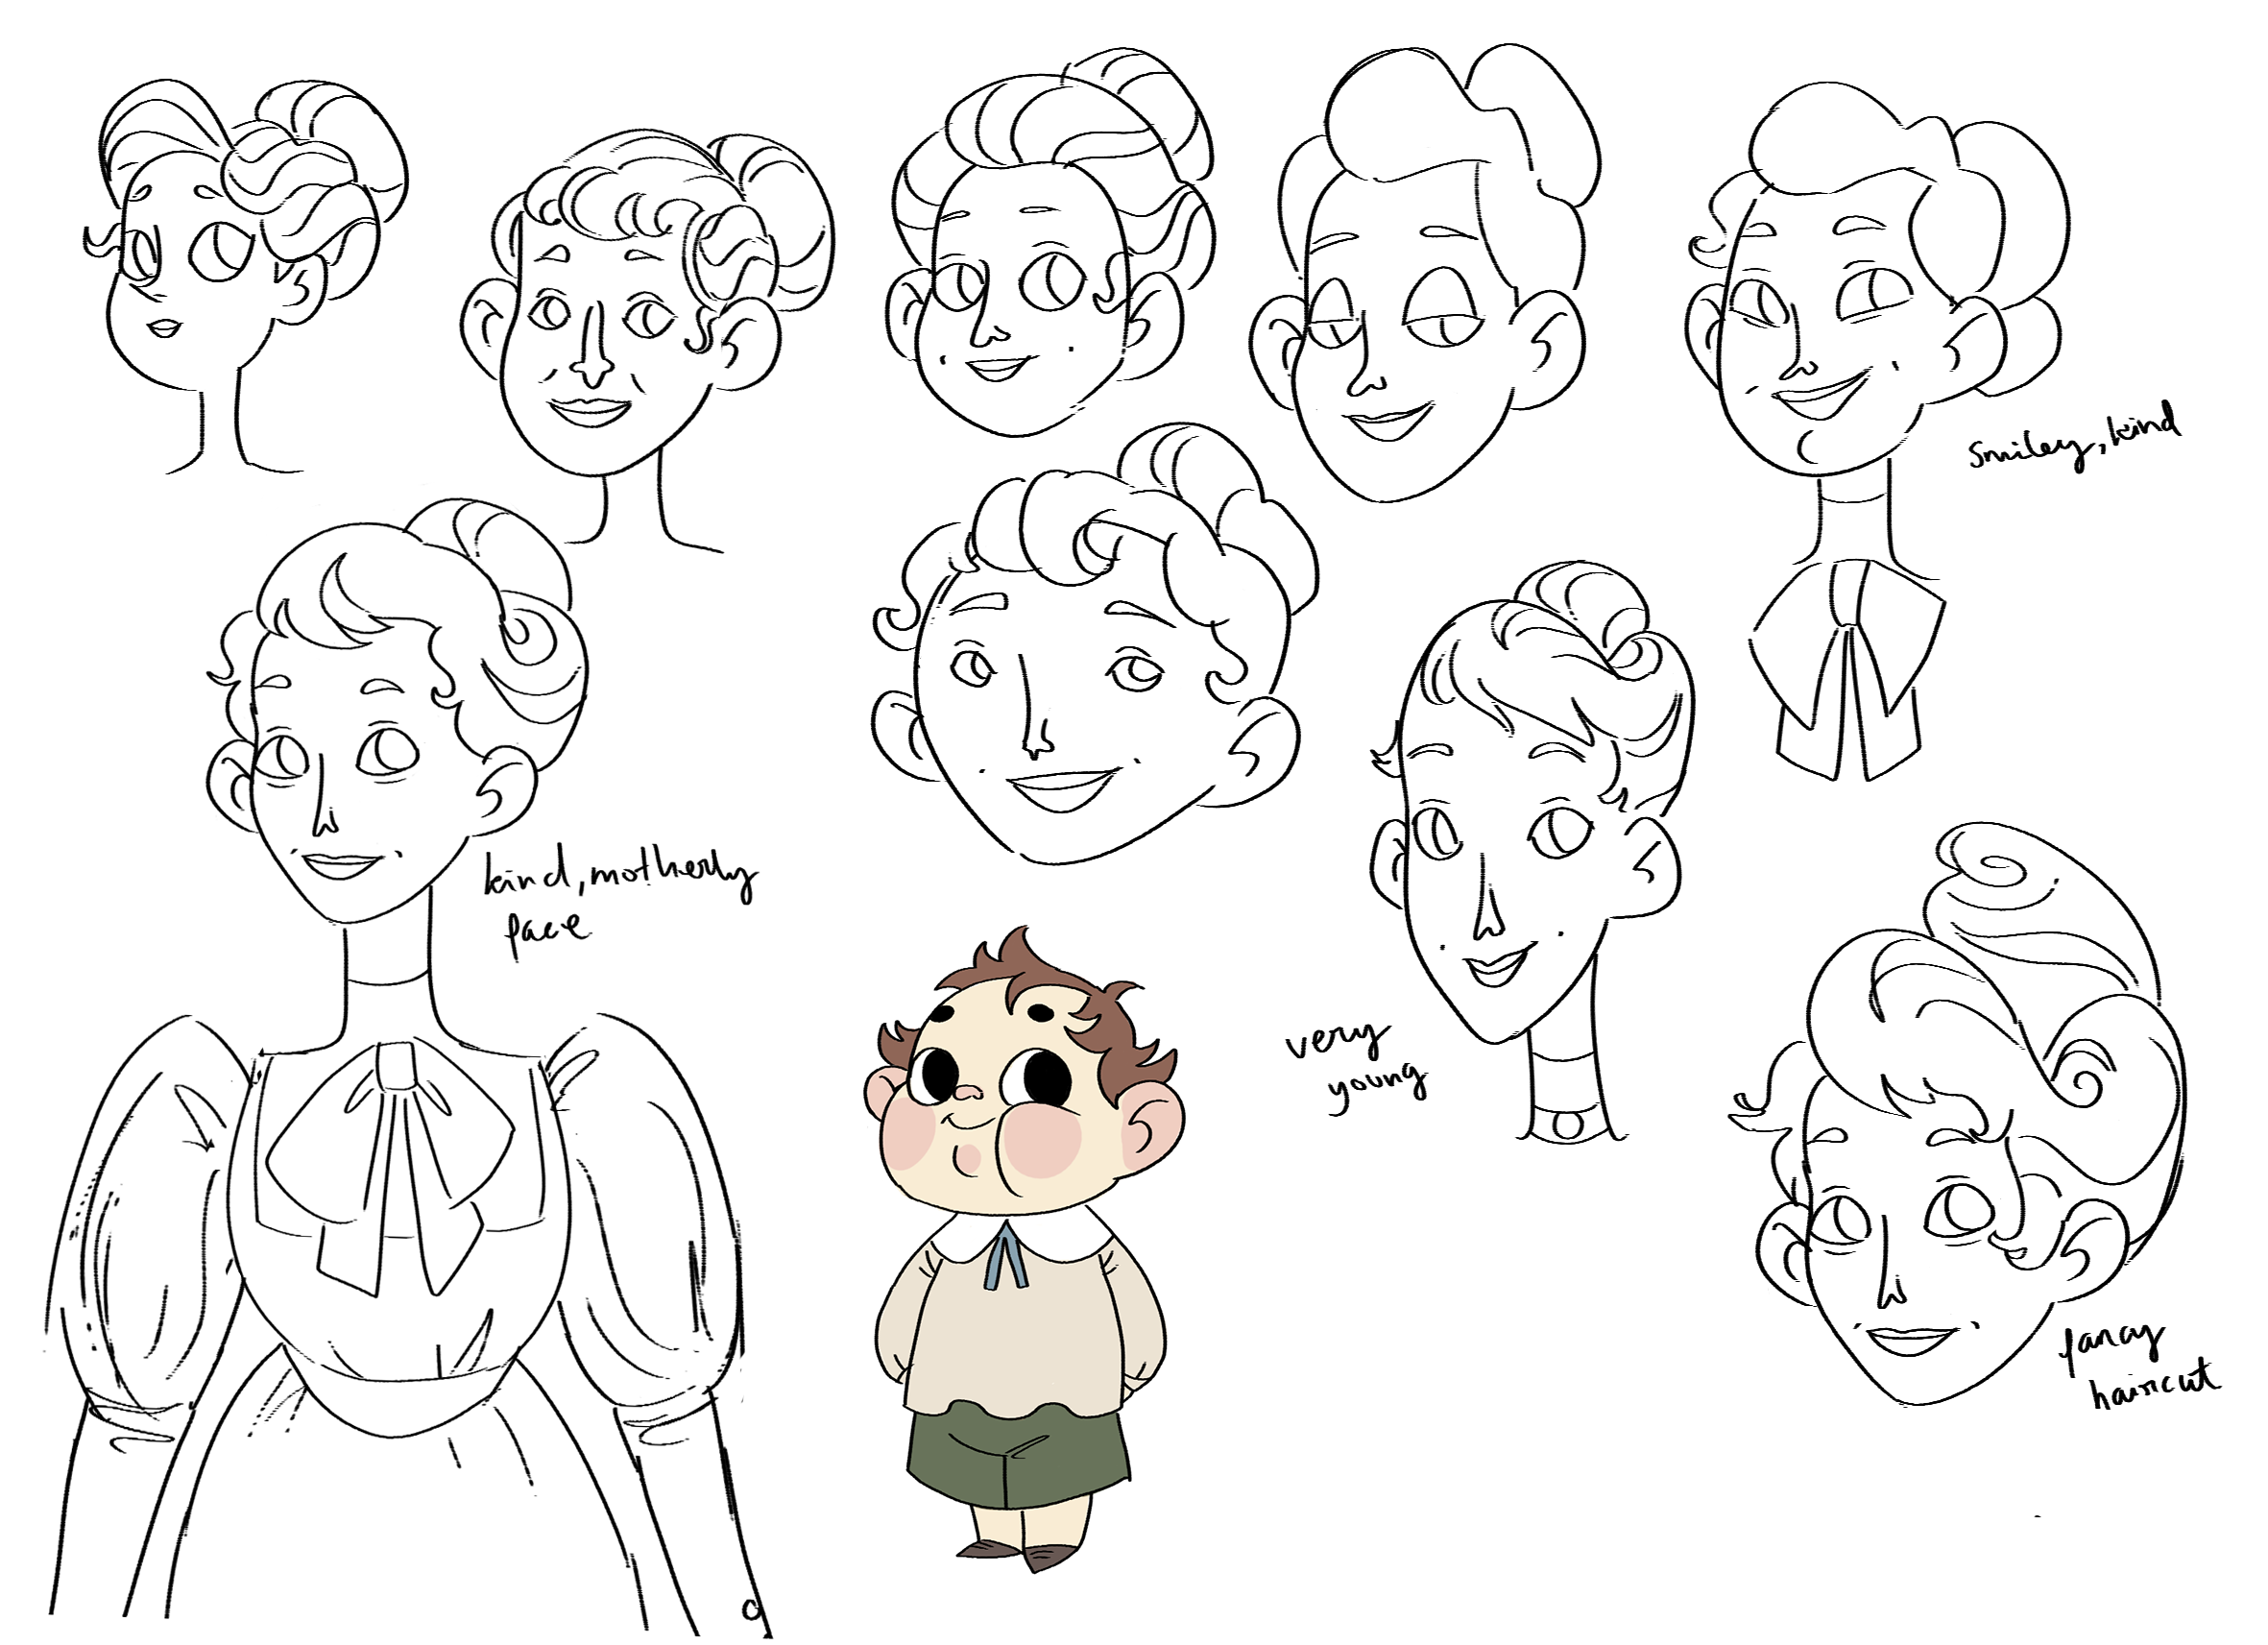 mary character sketches